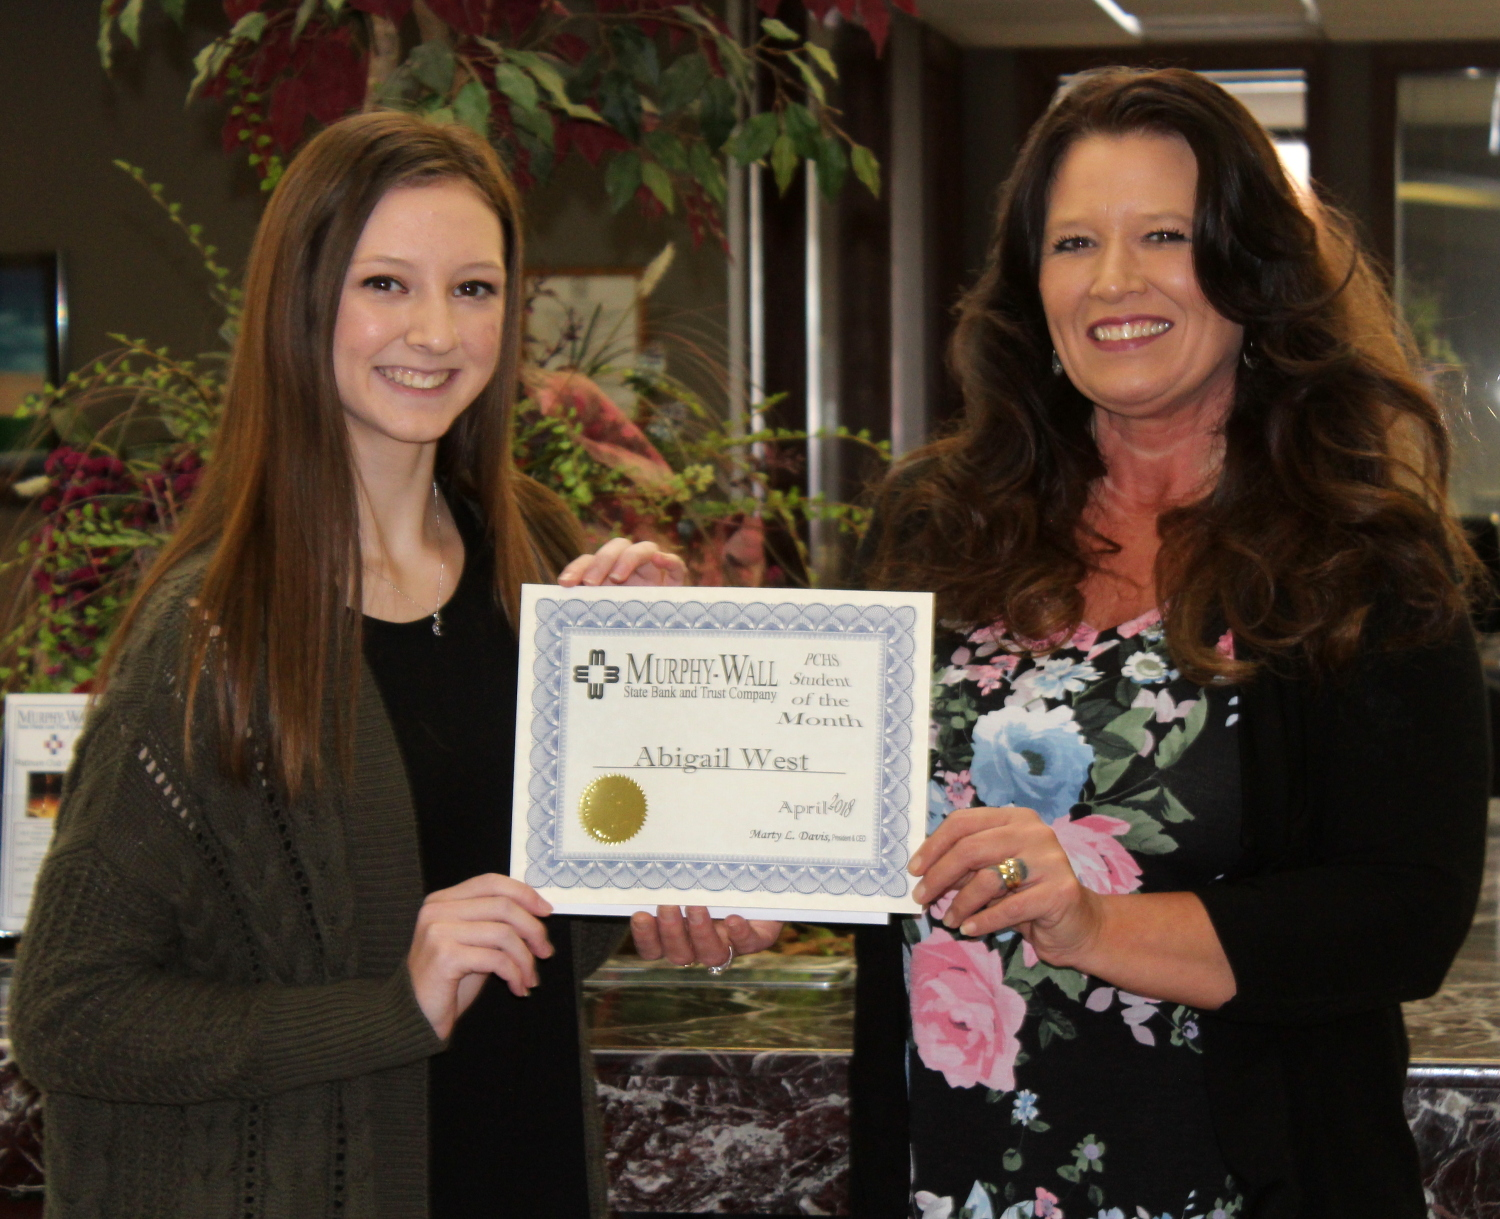 Murphy-Wall State Bank and Trust Company employee Candice Knight give PCHS student Abigail West the Student of the Month Award